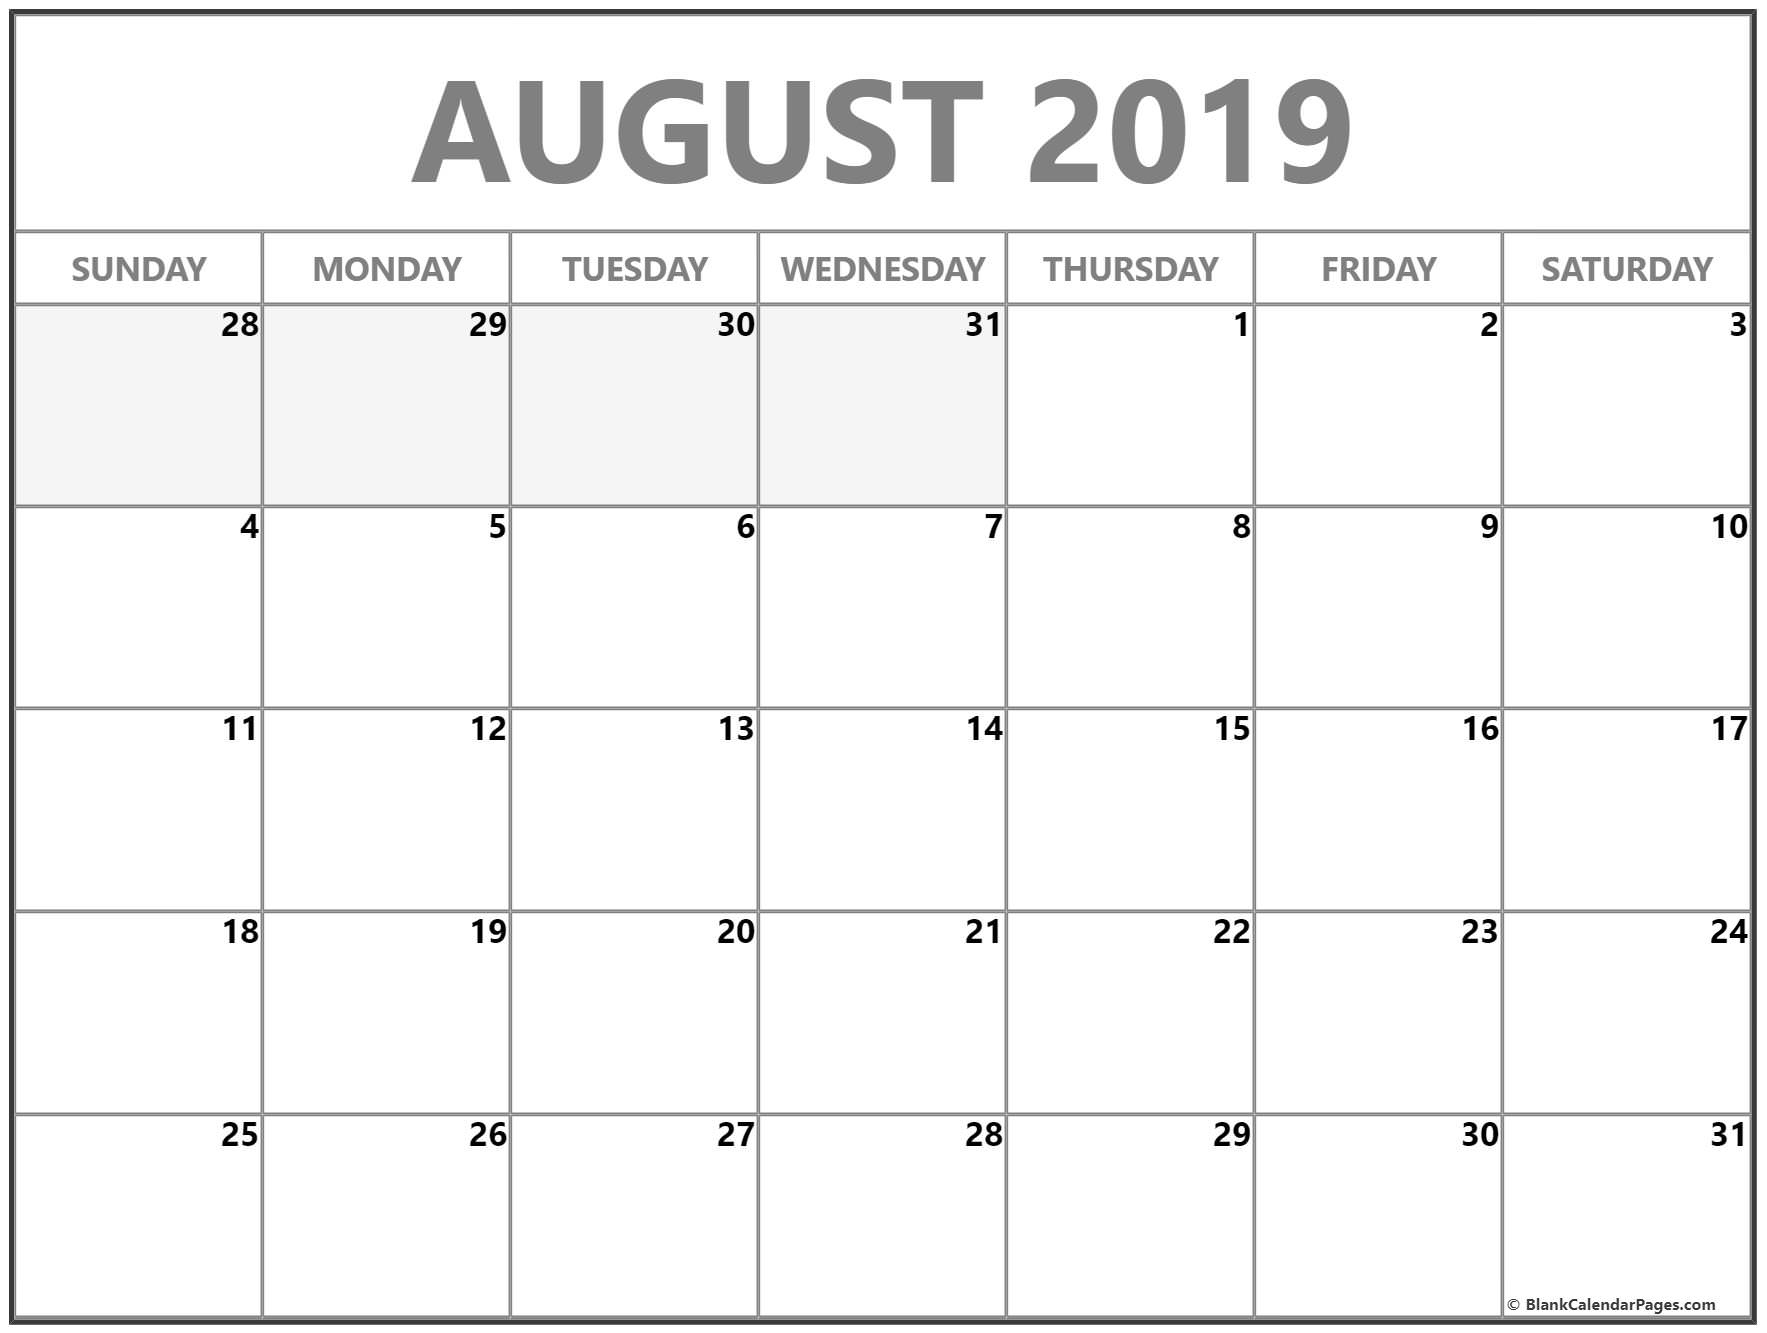 August 2019 Calendar | Free Printable Monthly Calendars Remarkable Free Printable Calendars Without Weekends